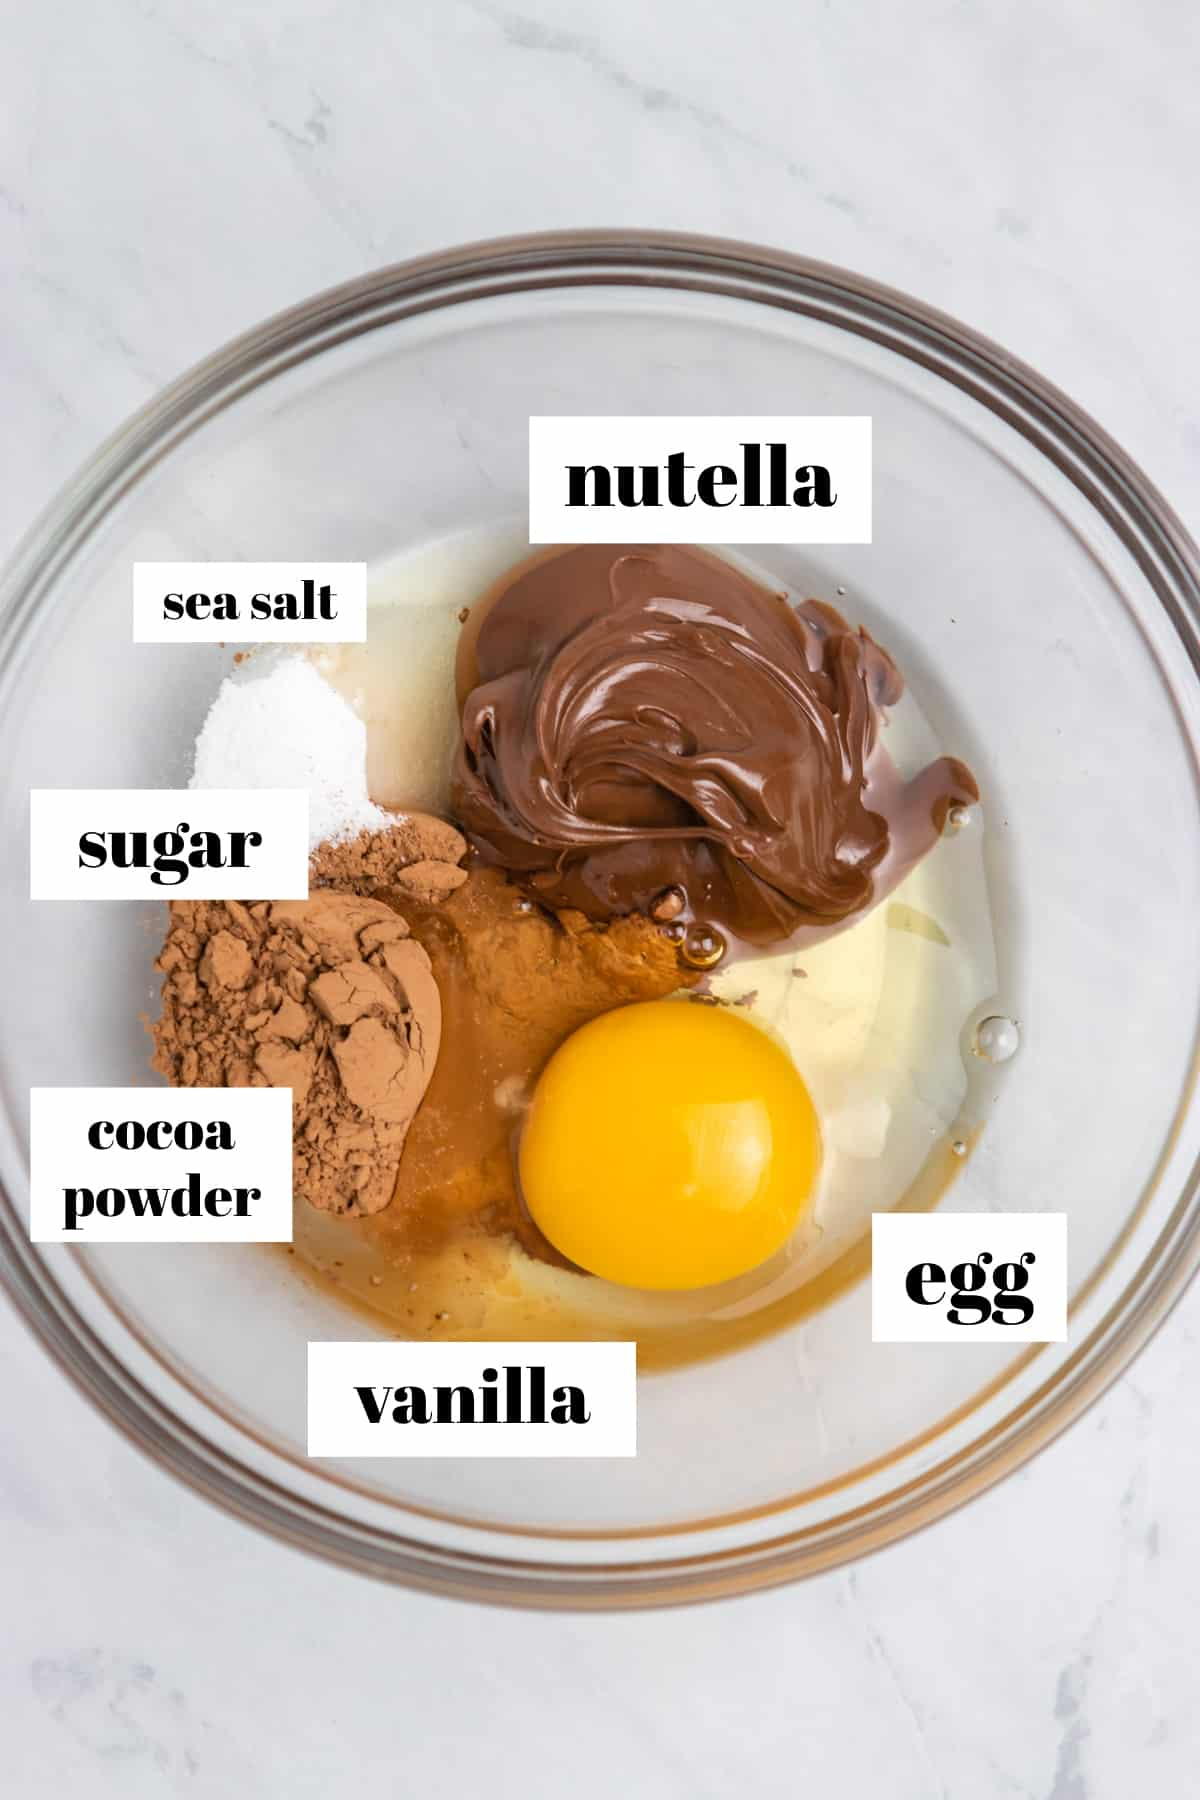 Labeled ingredients including egg, cocoa powder, vanilla, etc. in mixing bowl.